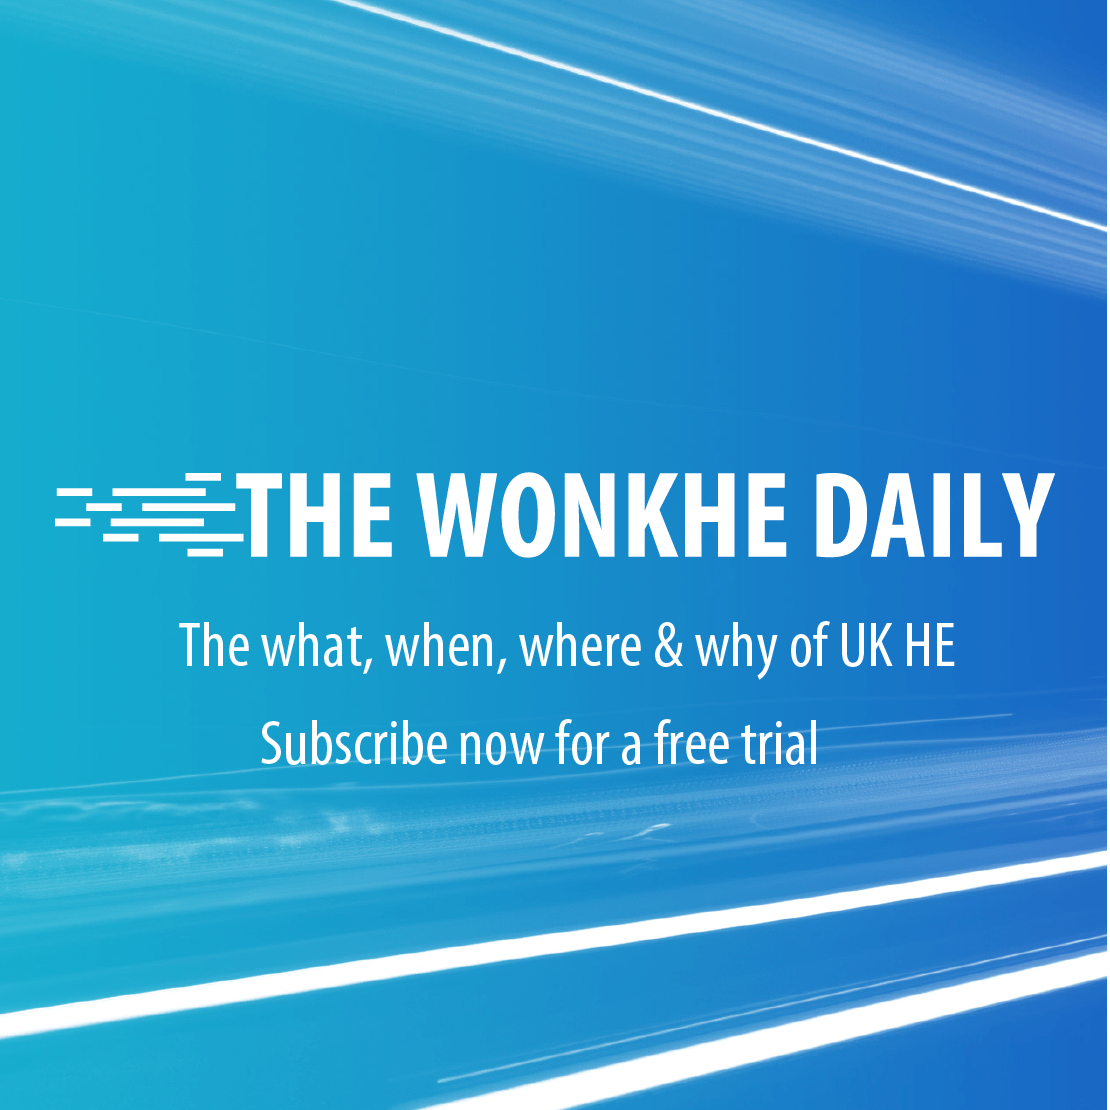 wonkhe daily